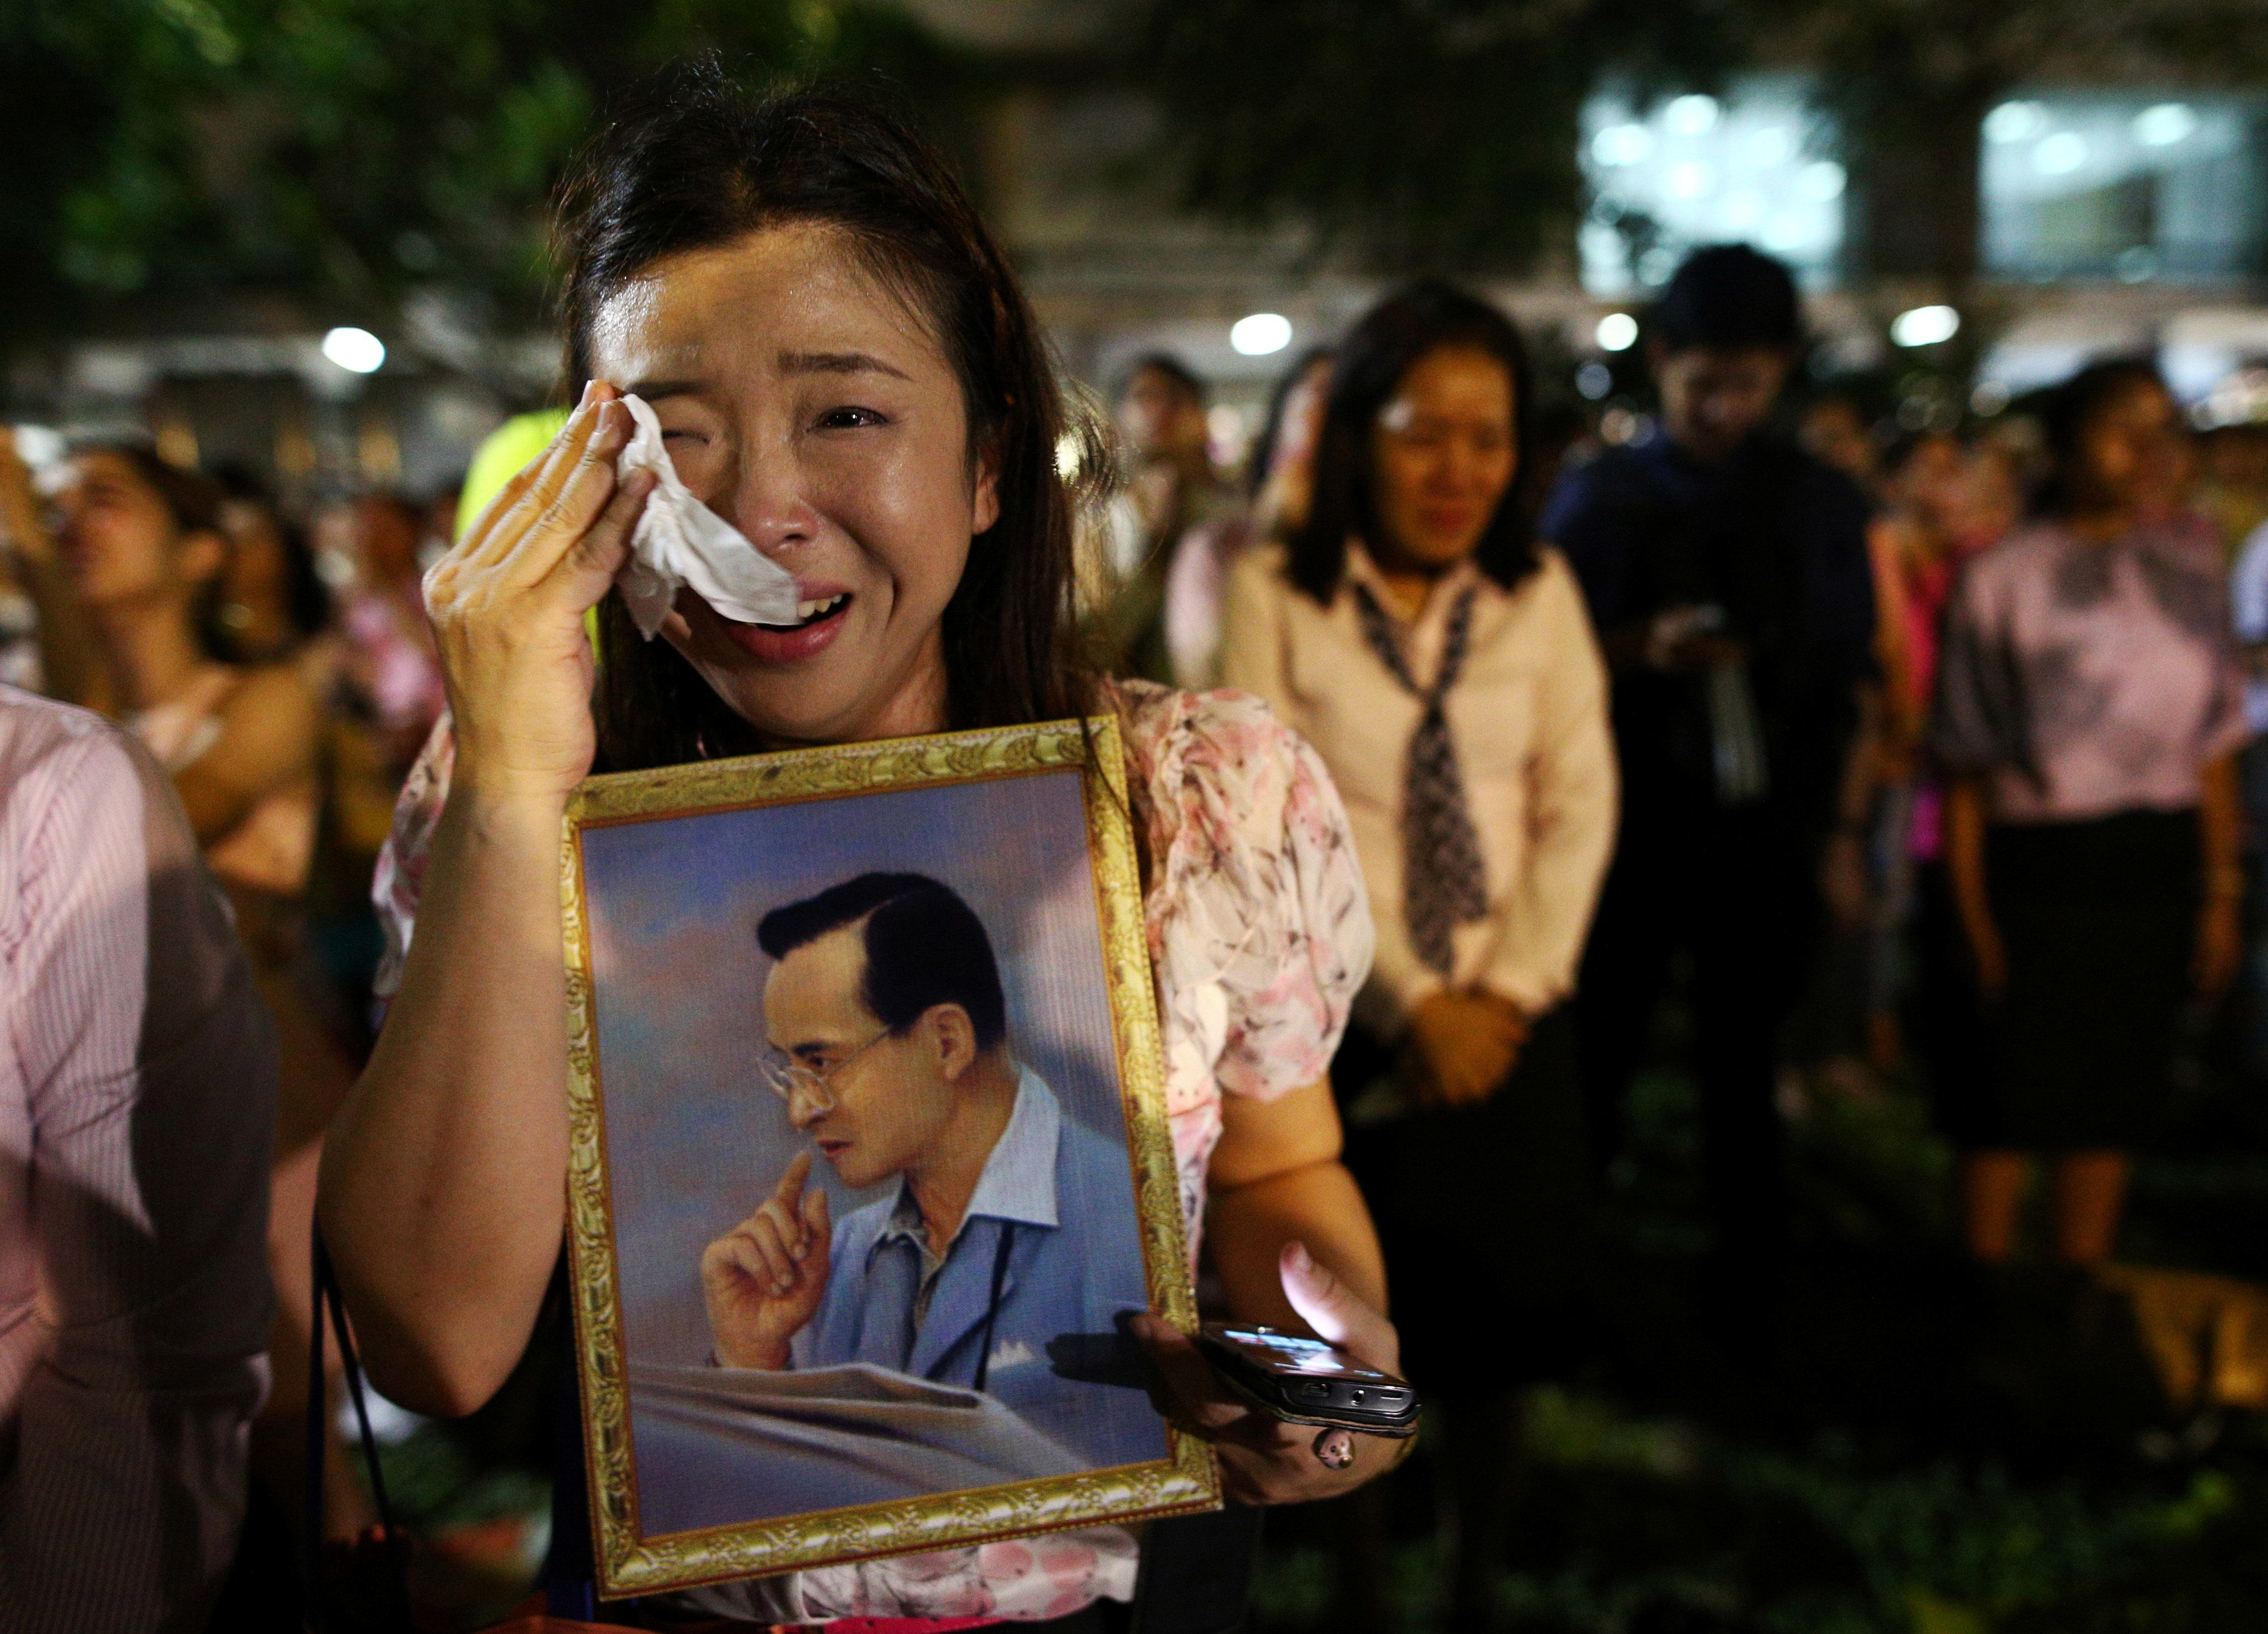 A woman weeps after an announcement that Thailand's King Bhumibol Adulyadej has died.